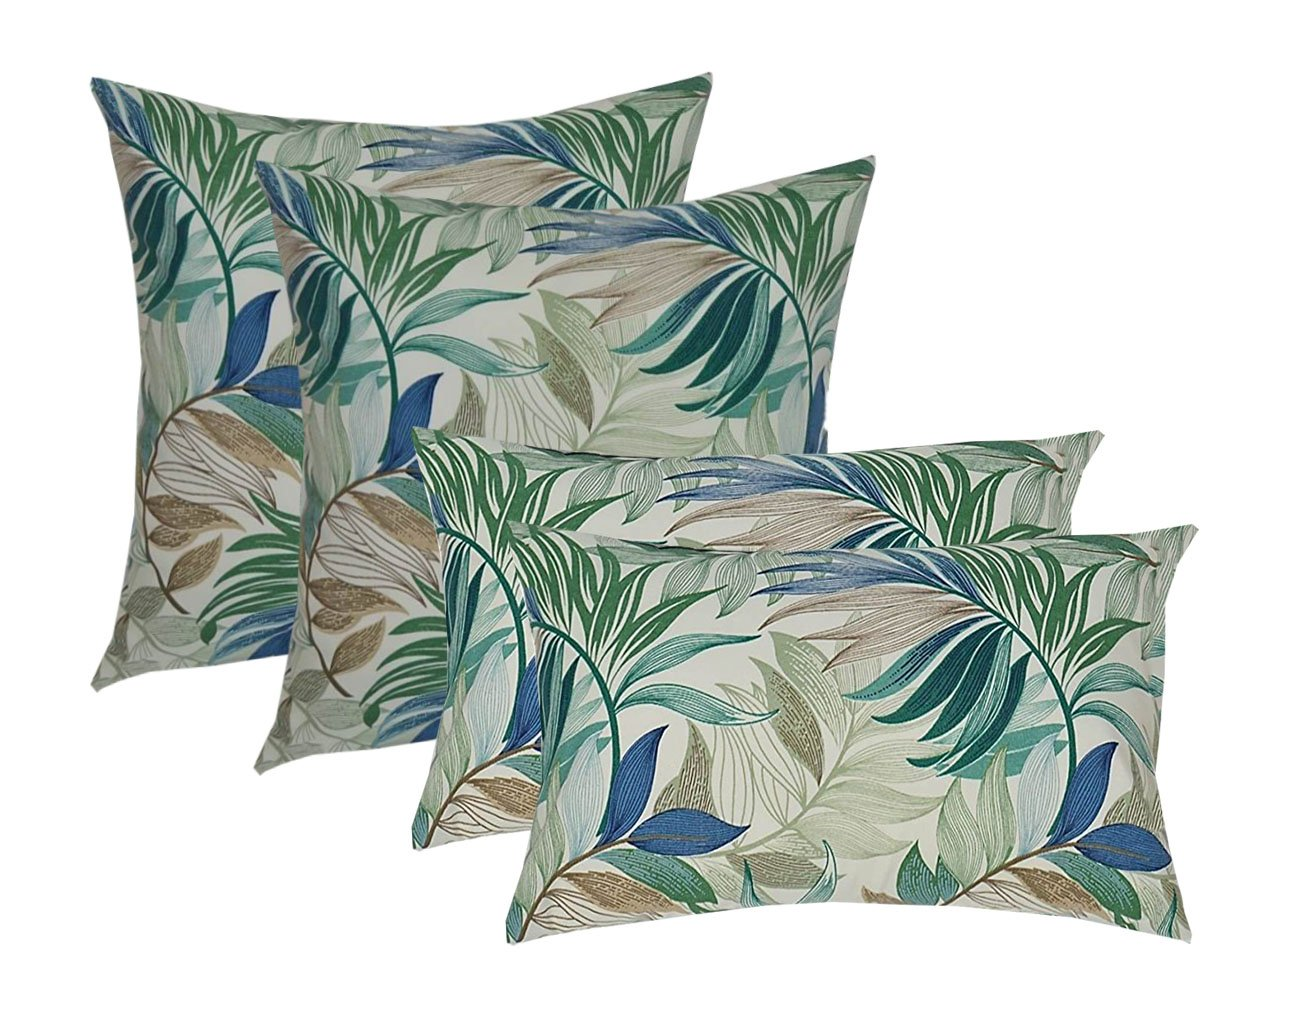 Set of 4 Indoor Outdoor Pillows 2 Square Pillows & 2 Rectangle Lumbar Decorative Throw Pillows - White, Blue, Teal, Green, Tan Tropical Palm Leaf - Choose Size (17''X17'' Square & 12''X20'' Lumbar) by Resort Spa Home Decor